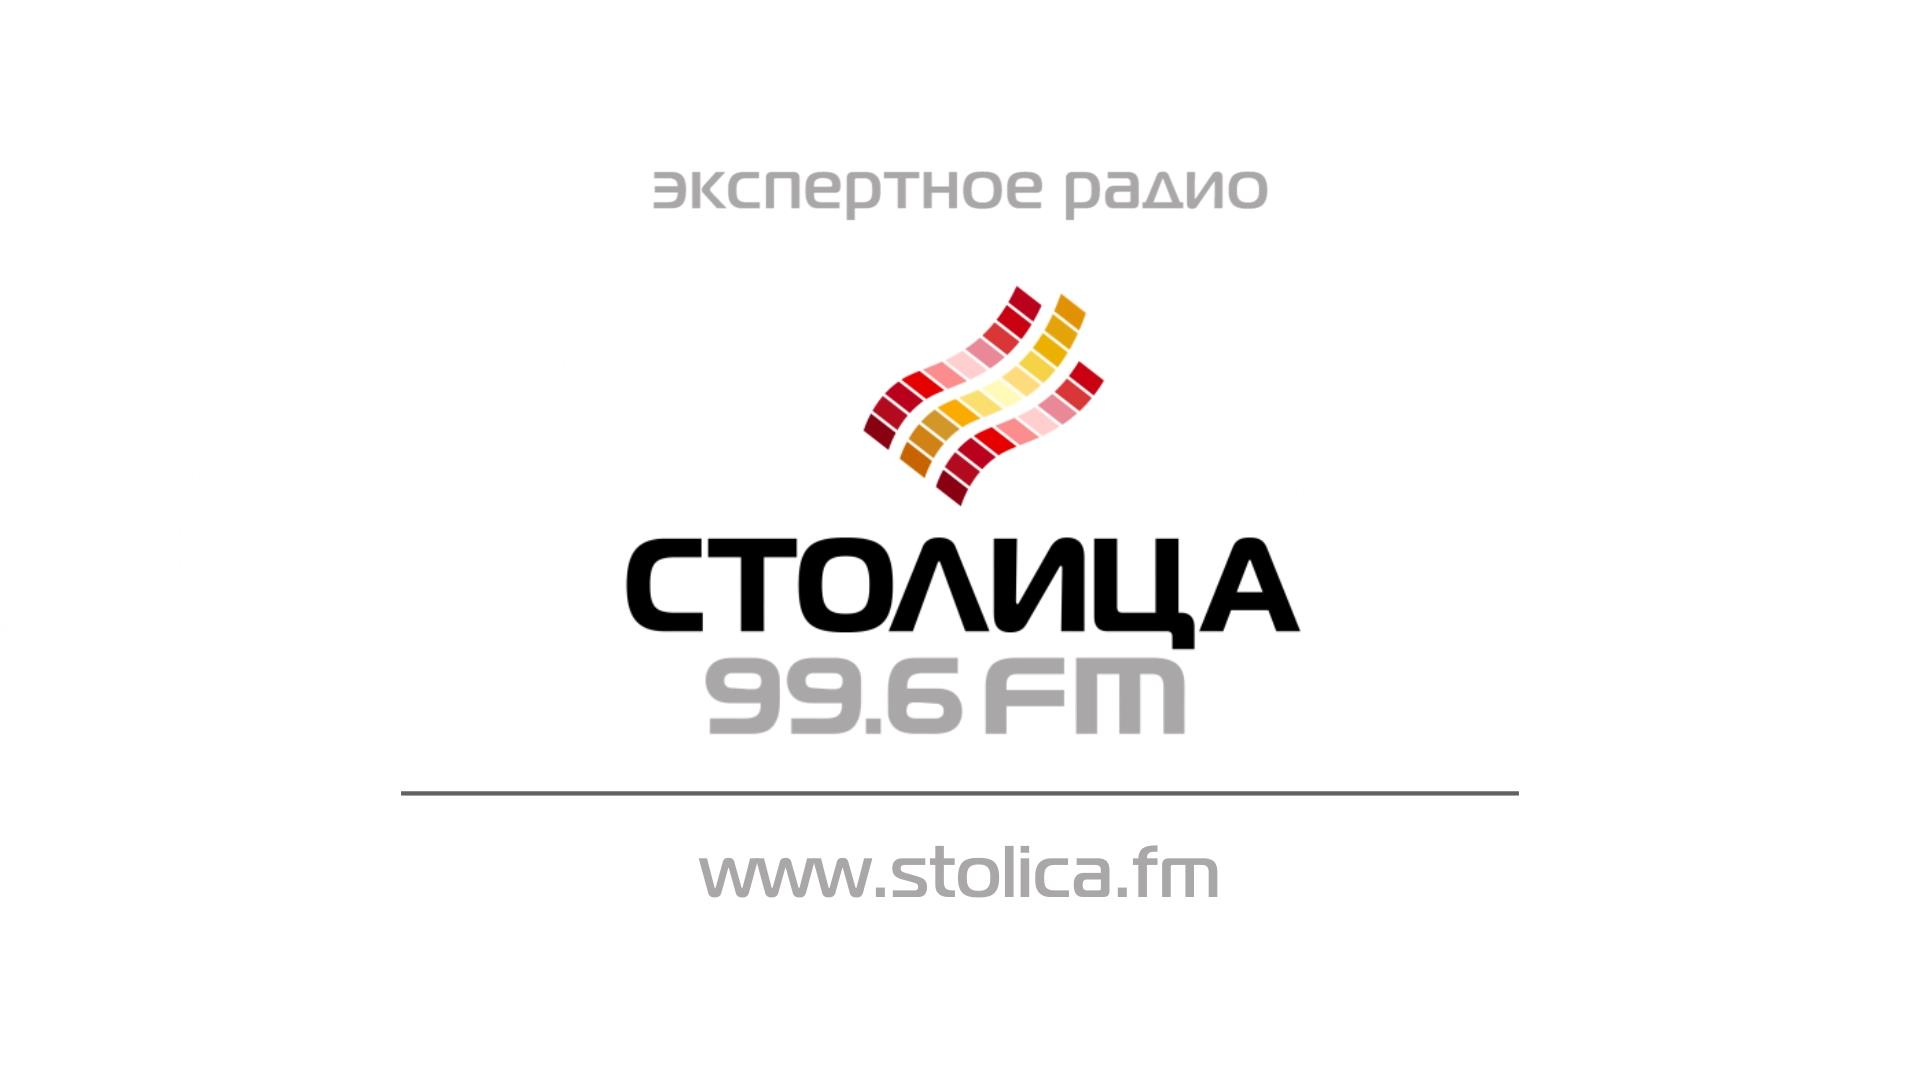 rádio Capital 99.6 FM. Video reklama, přílba, logo animace.